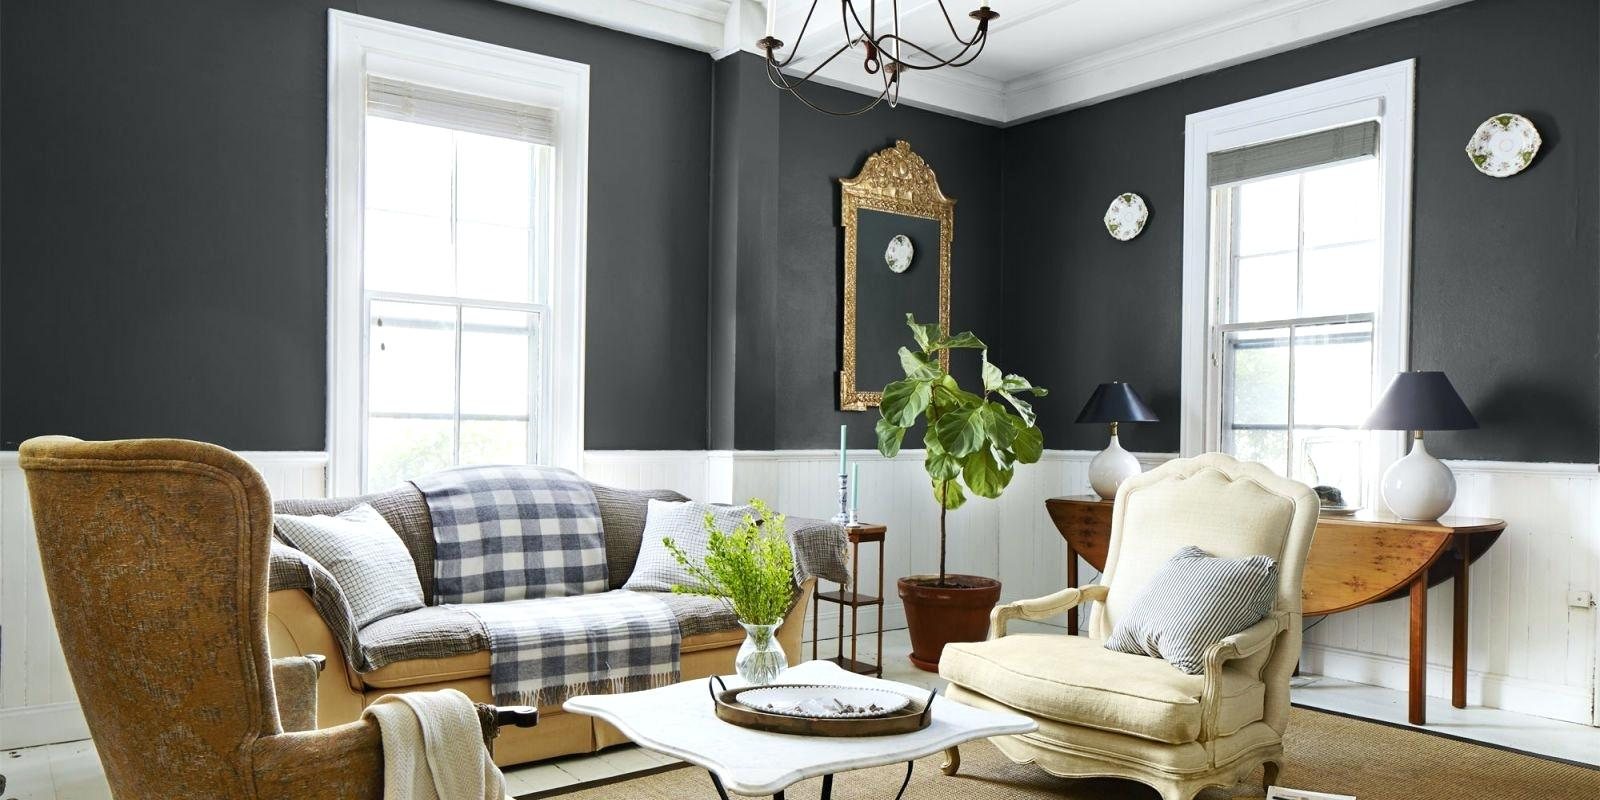 paint-finish-for-living-room-what-you-need-to-know-about-four-main-paint-finishes-flat-eggshell-semi-gloss-and-gloss-and-the-best-bets-for-where-to-use-them-in-your-home-paint-finish-living-room